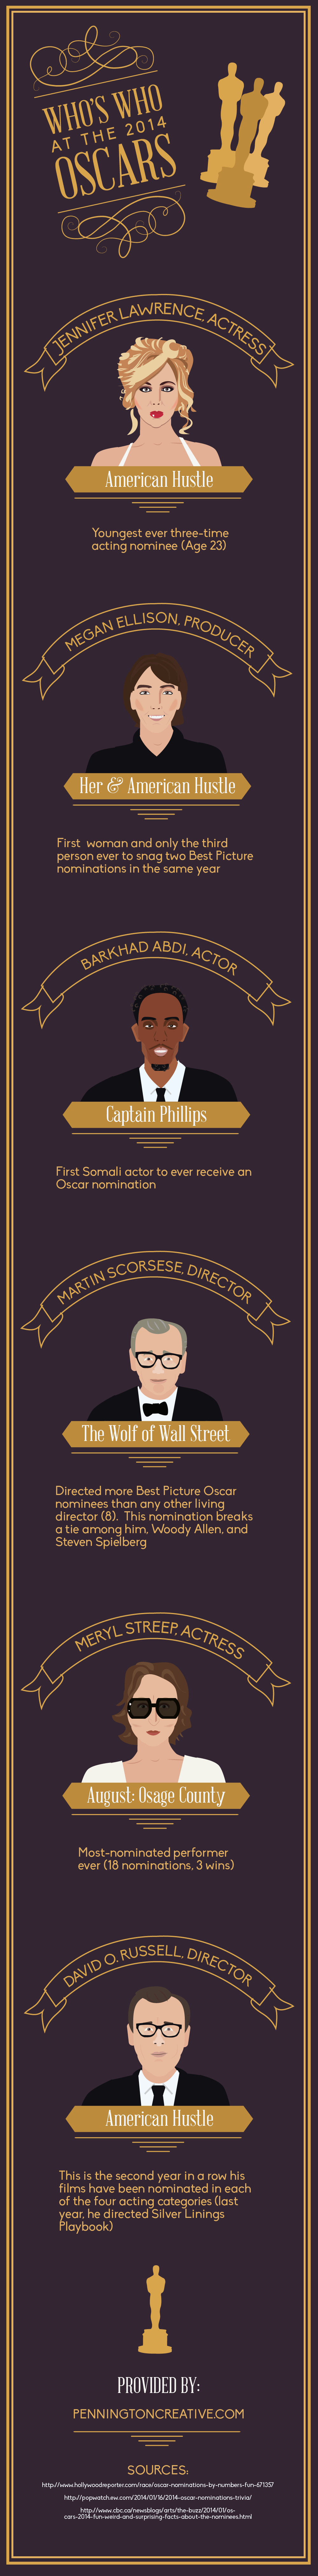 2014 Oscars Infographic